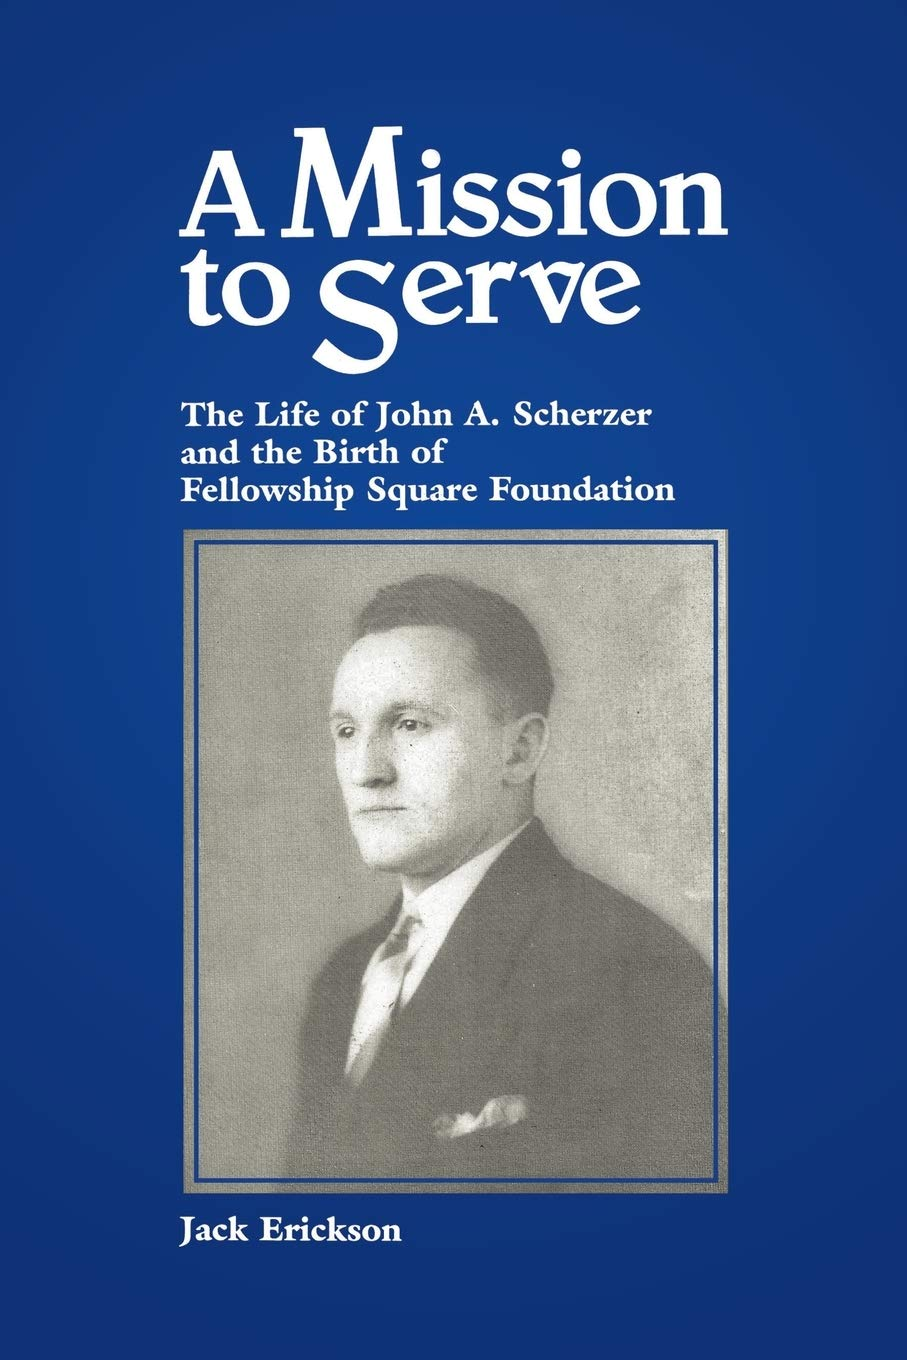 A Mission to Serve